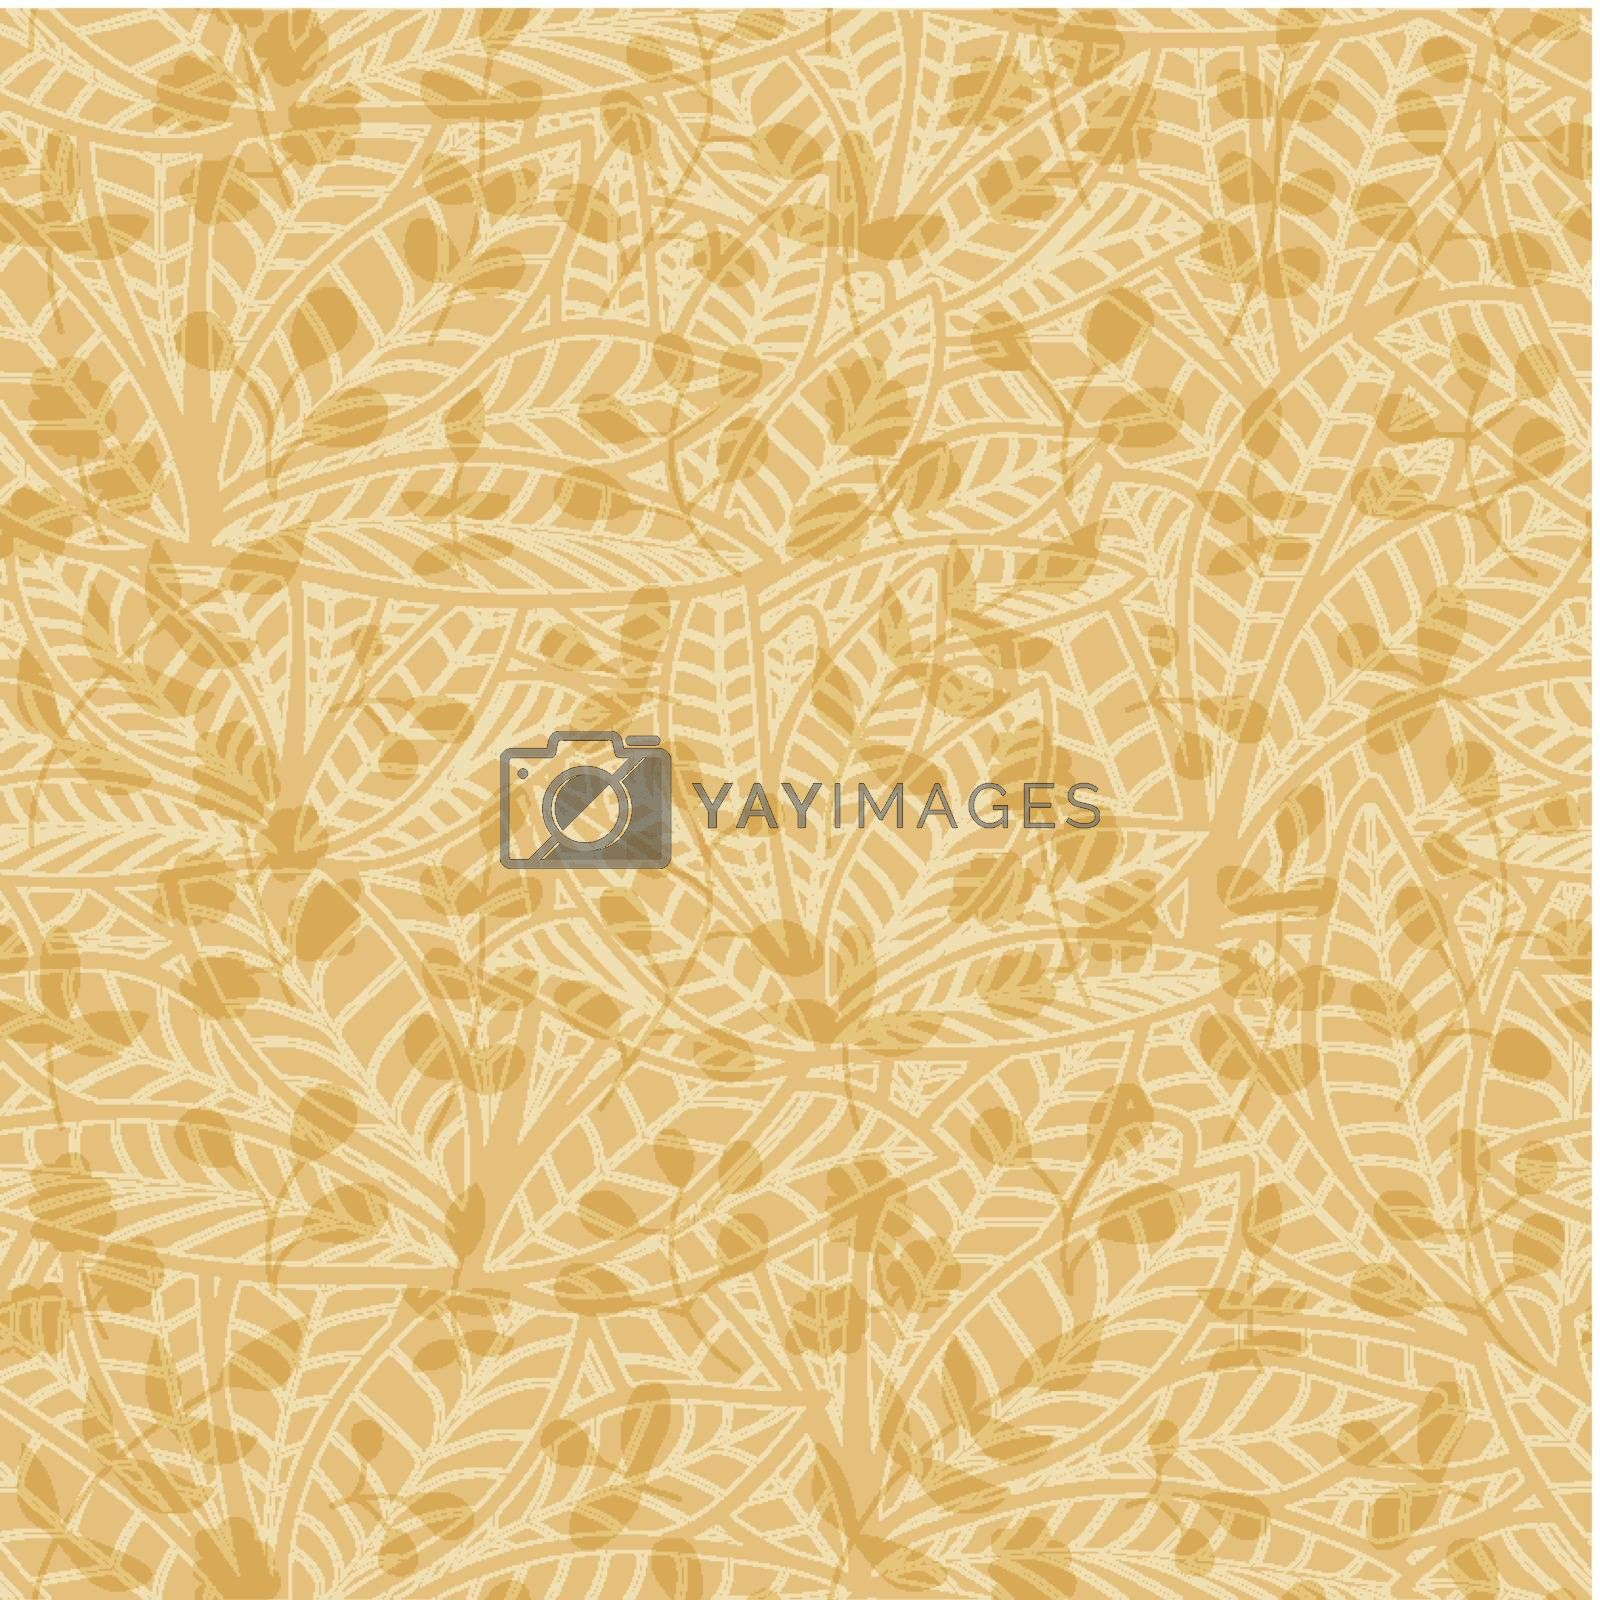 neutral floral wallpaper. plant swirls and curves by LittleCuckoo